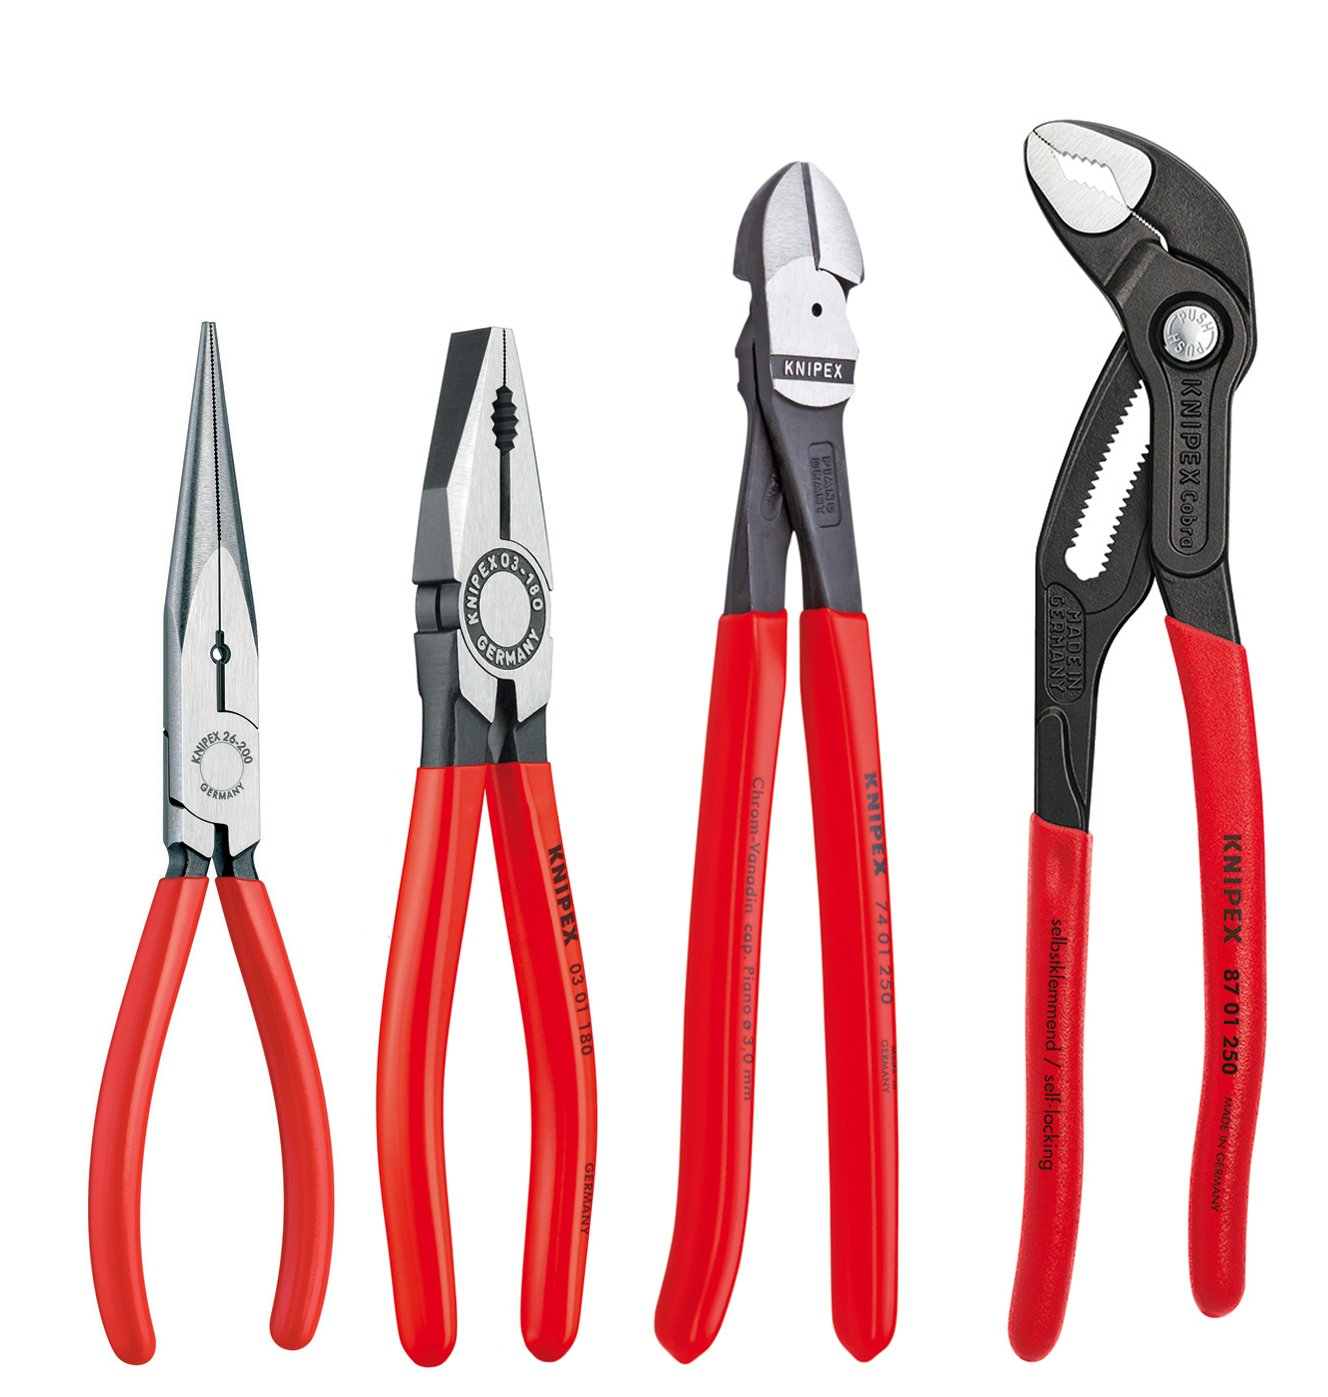 Knipex Tools 9K 00 80 94 US Cobra Combination Cutter and Needle Nose Pliers Set (4 Piece)